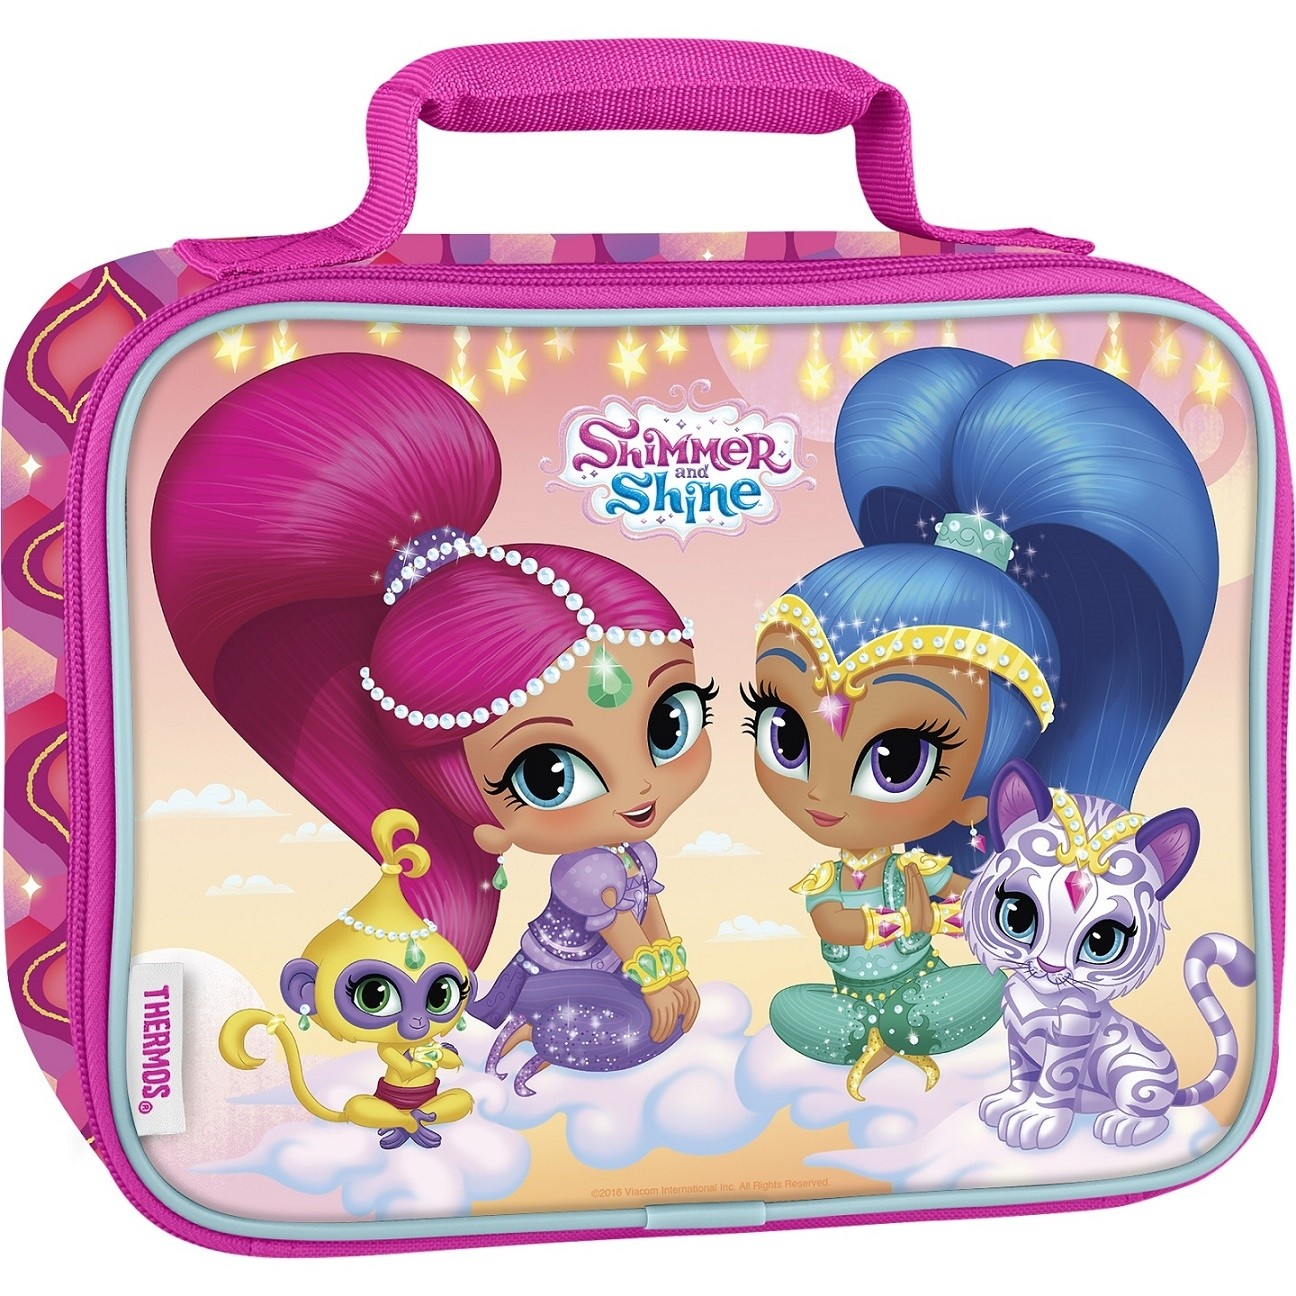 SOFT LUNCH BOX SHIMMER AND SHINE